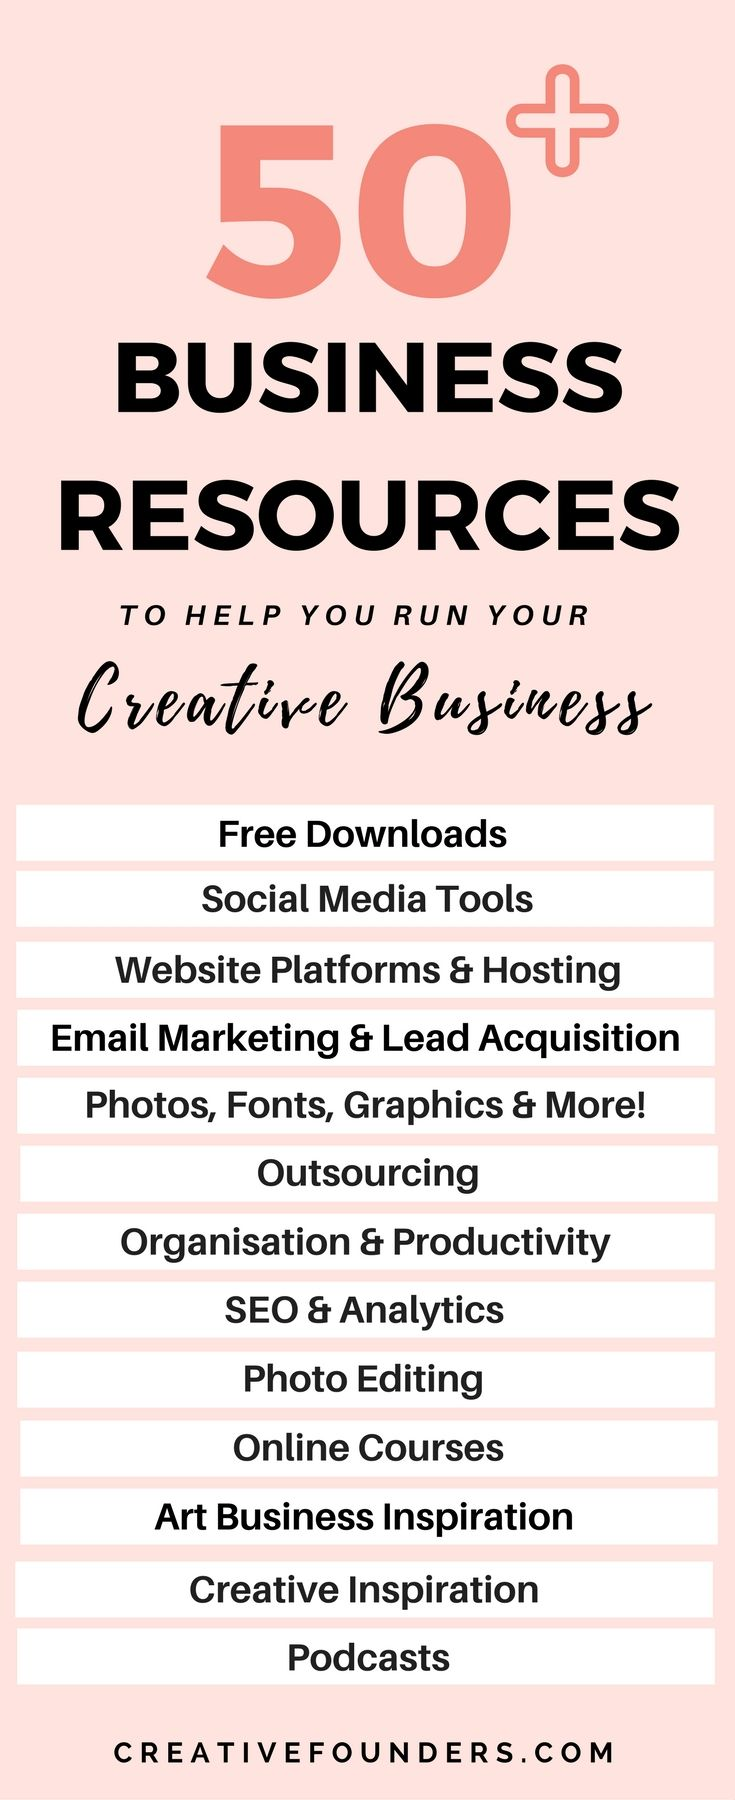 50 + Business resources to help you run your creative business. Tips for Artists, Small Business Owners, Creative Entrepreneurs. Art Business // Sell Art Online // Business Hacks // SEO // Online Courses // Free Downloads // Social Media Tools